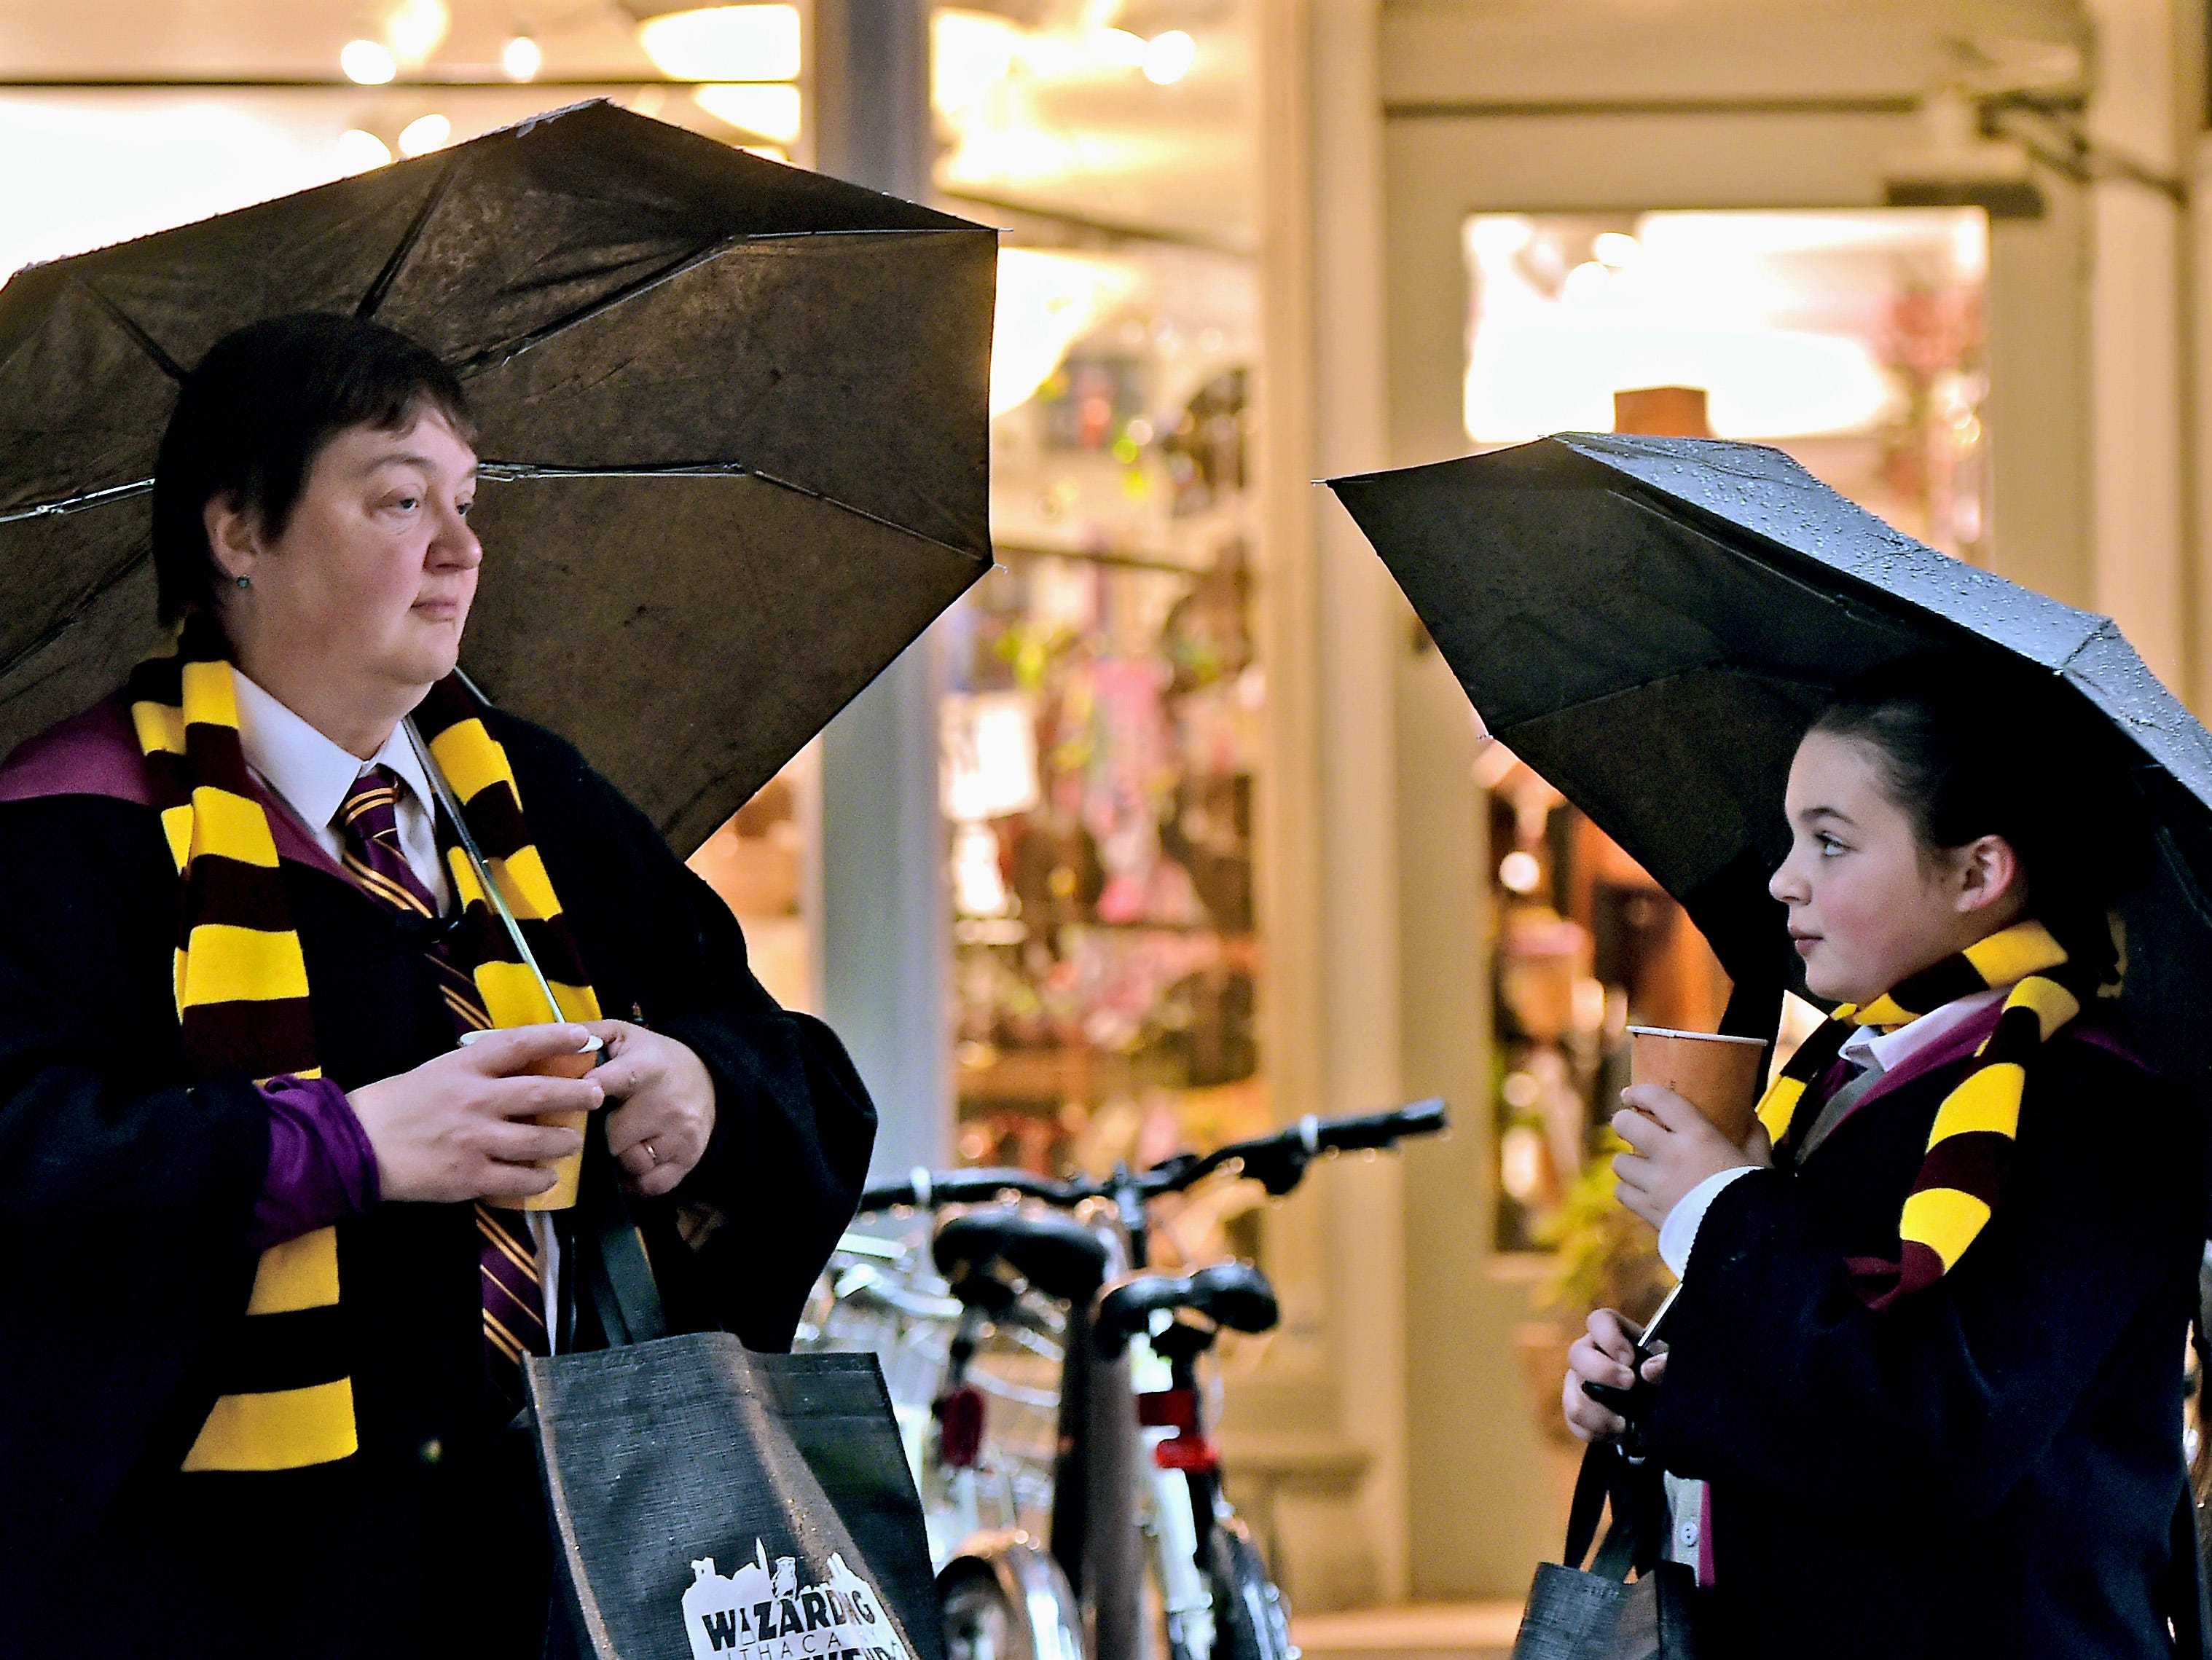 Andrea Falco and her daugther Annika Falco of Cobleskill, NY, during Wizarding Weekend in downtown Ithaca on Saturday, October 27, 2018.